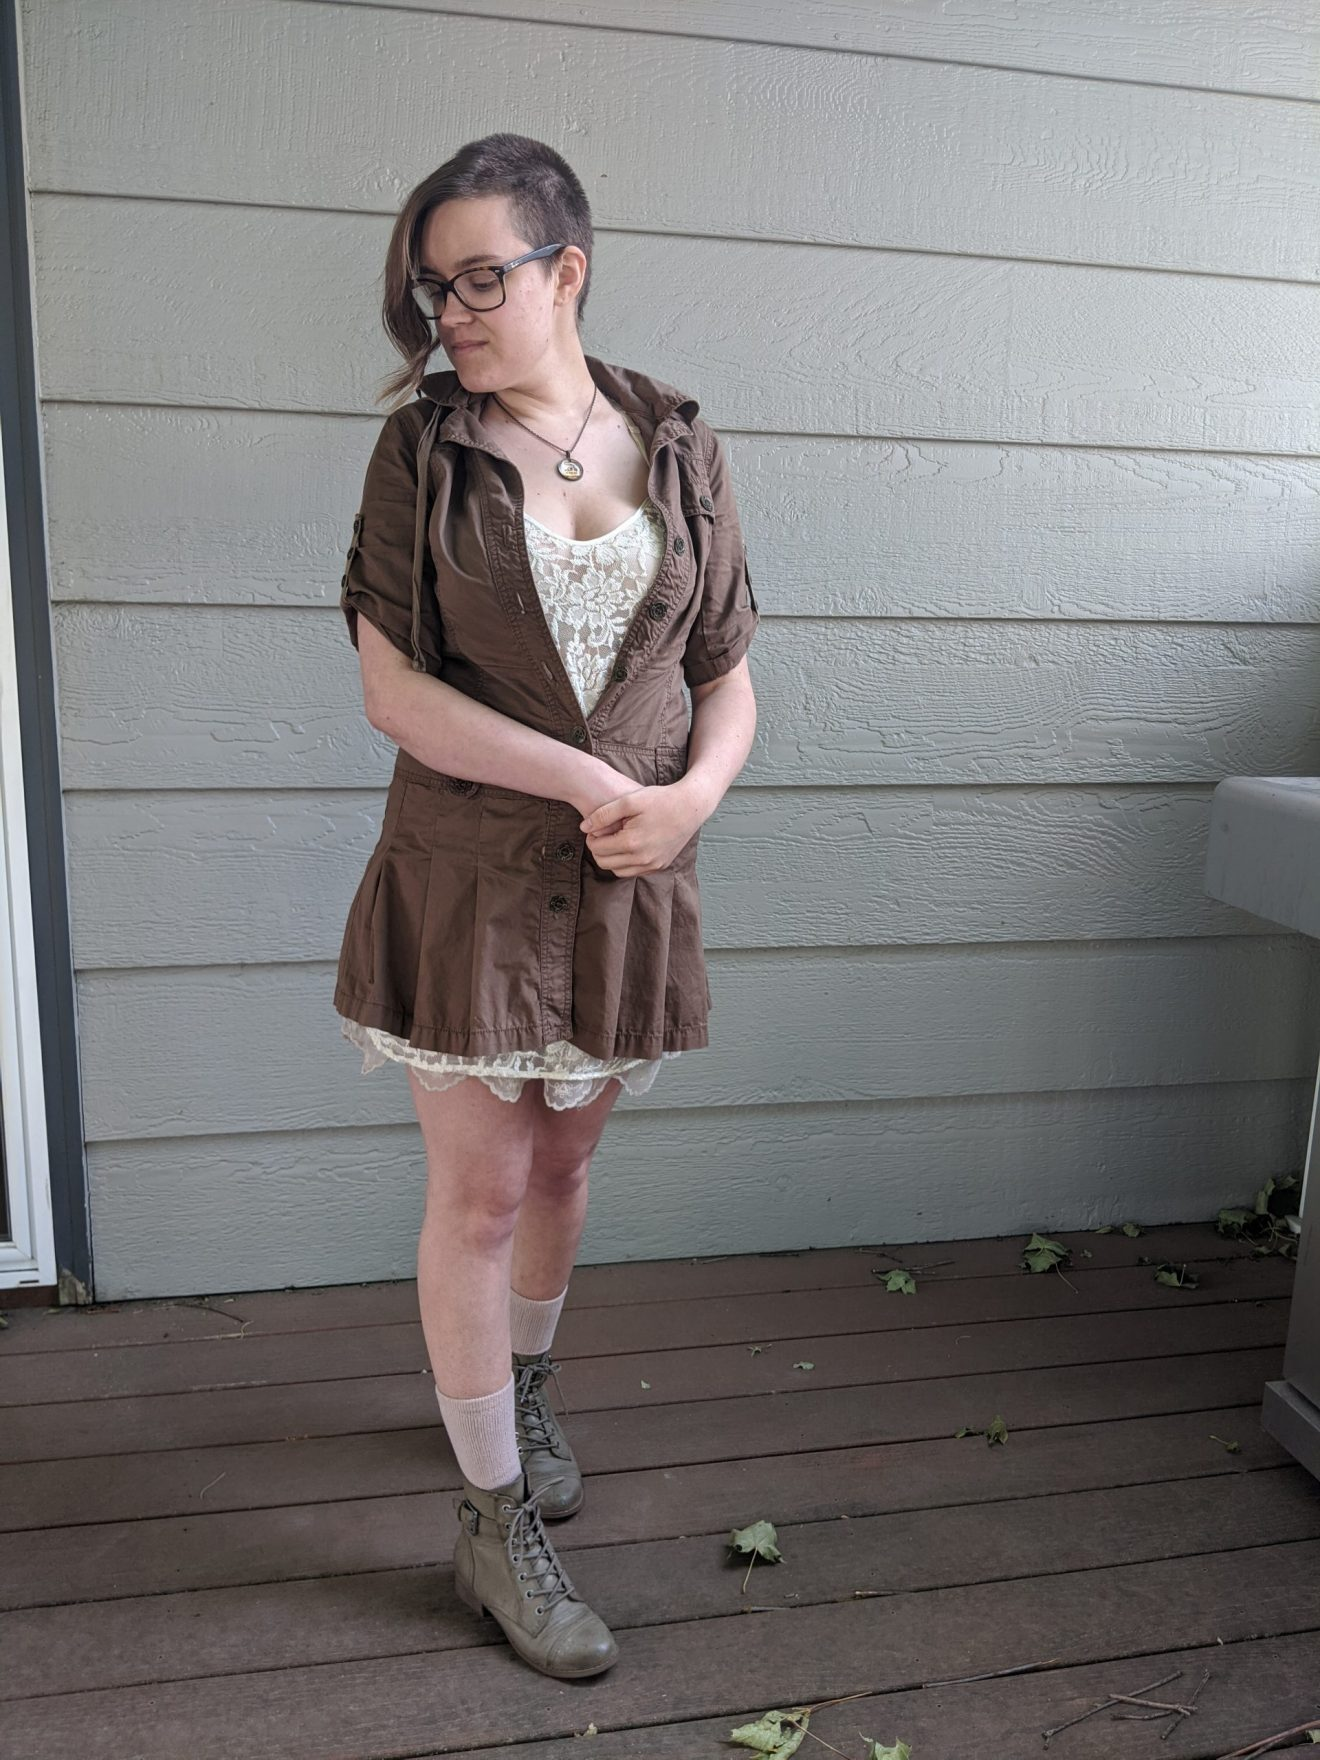 Trailblazing Alissa Ackerman Story Behind The Cloth fashion blog vintage antique adventurous outfit 8 scaled